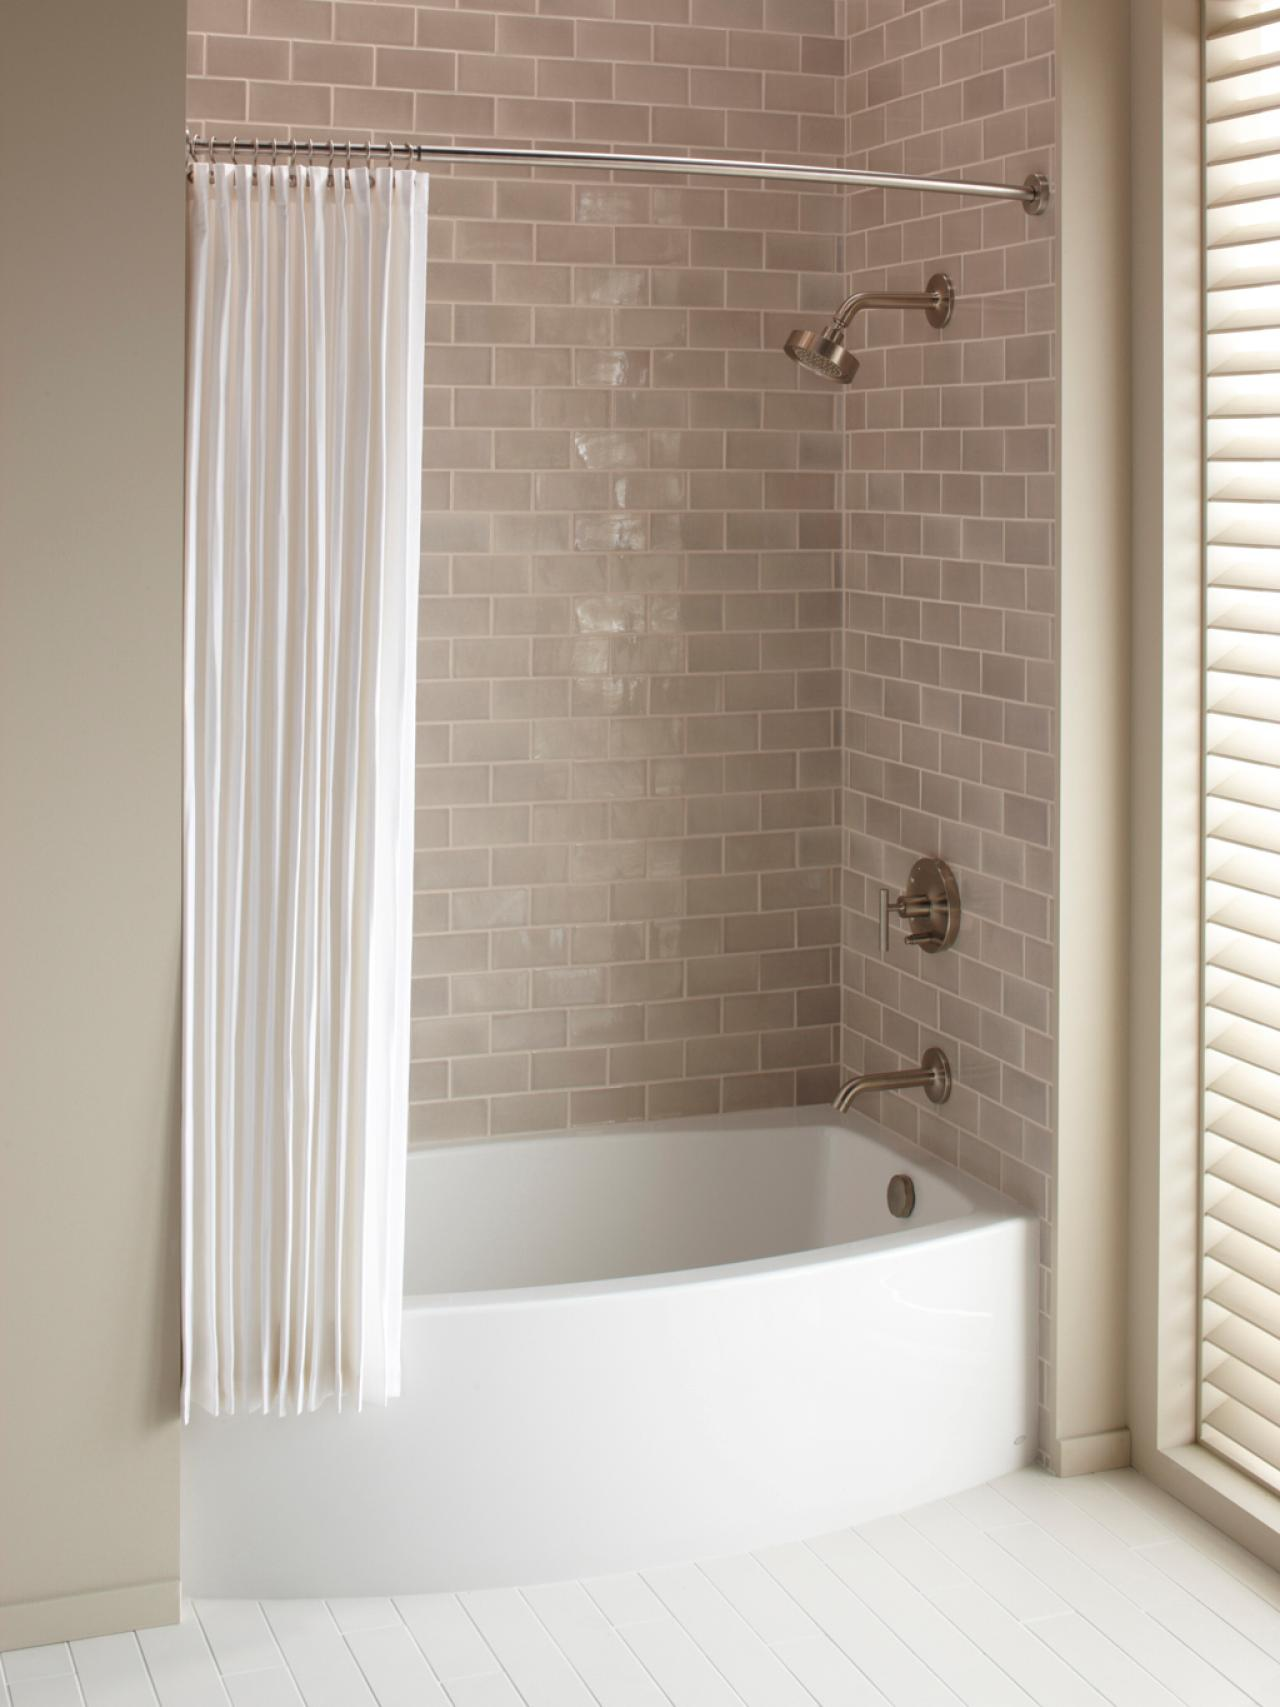 Kohler Tub And Shower : cheap bathtub shower combination installing a tub and shower combo ...